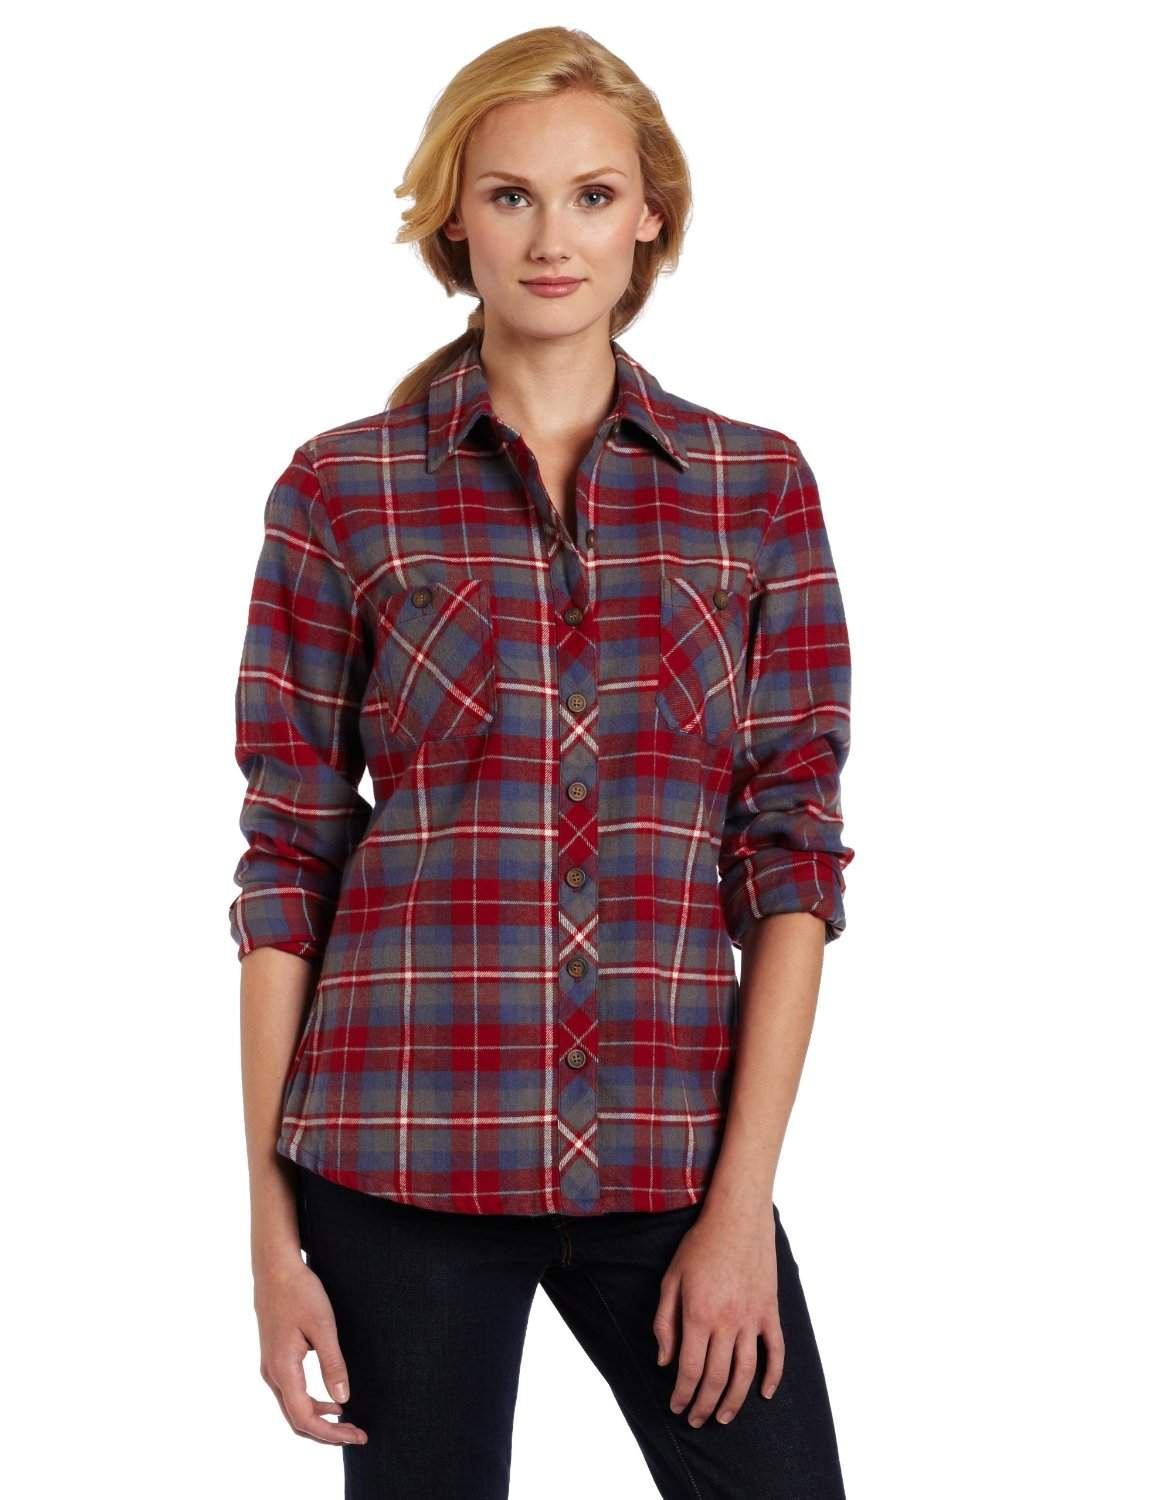 Plaid Flannel Shirts For Women